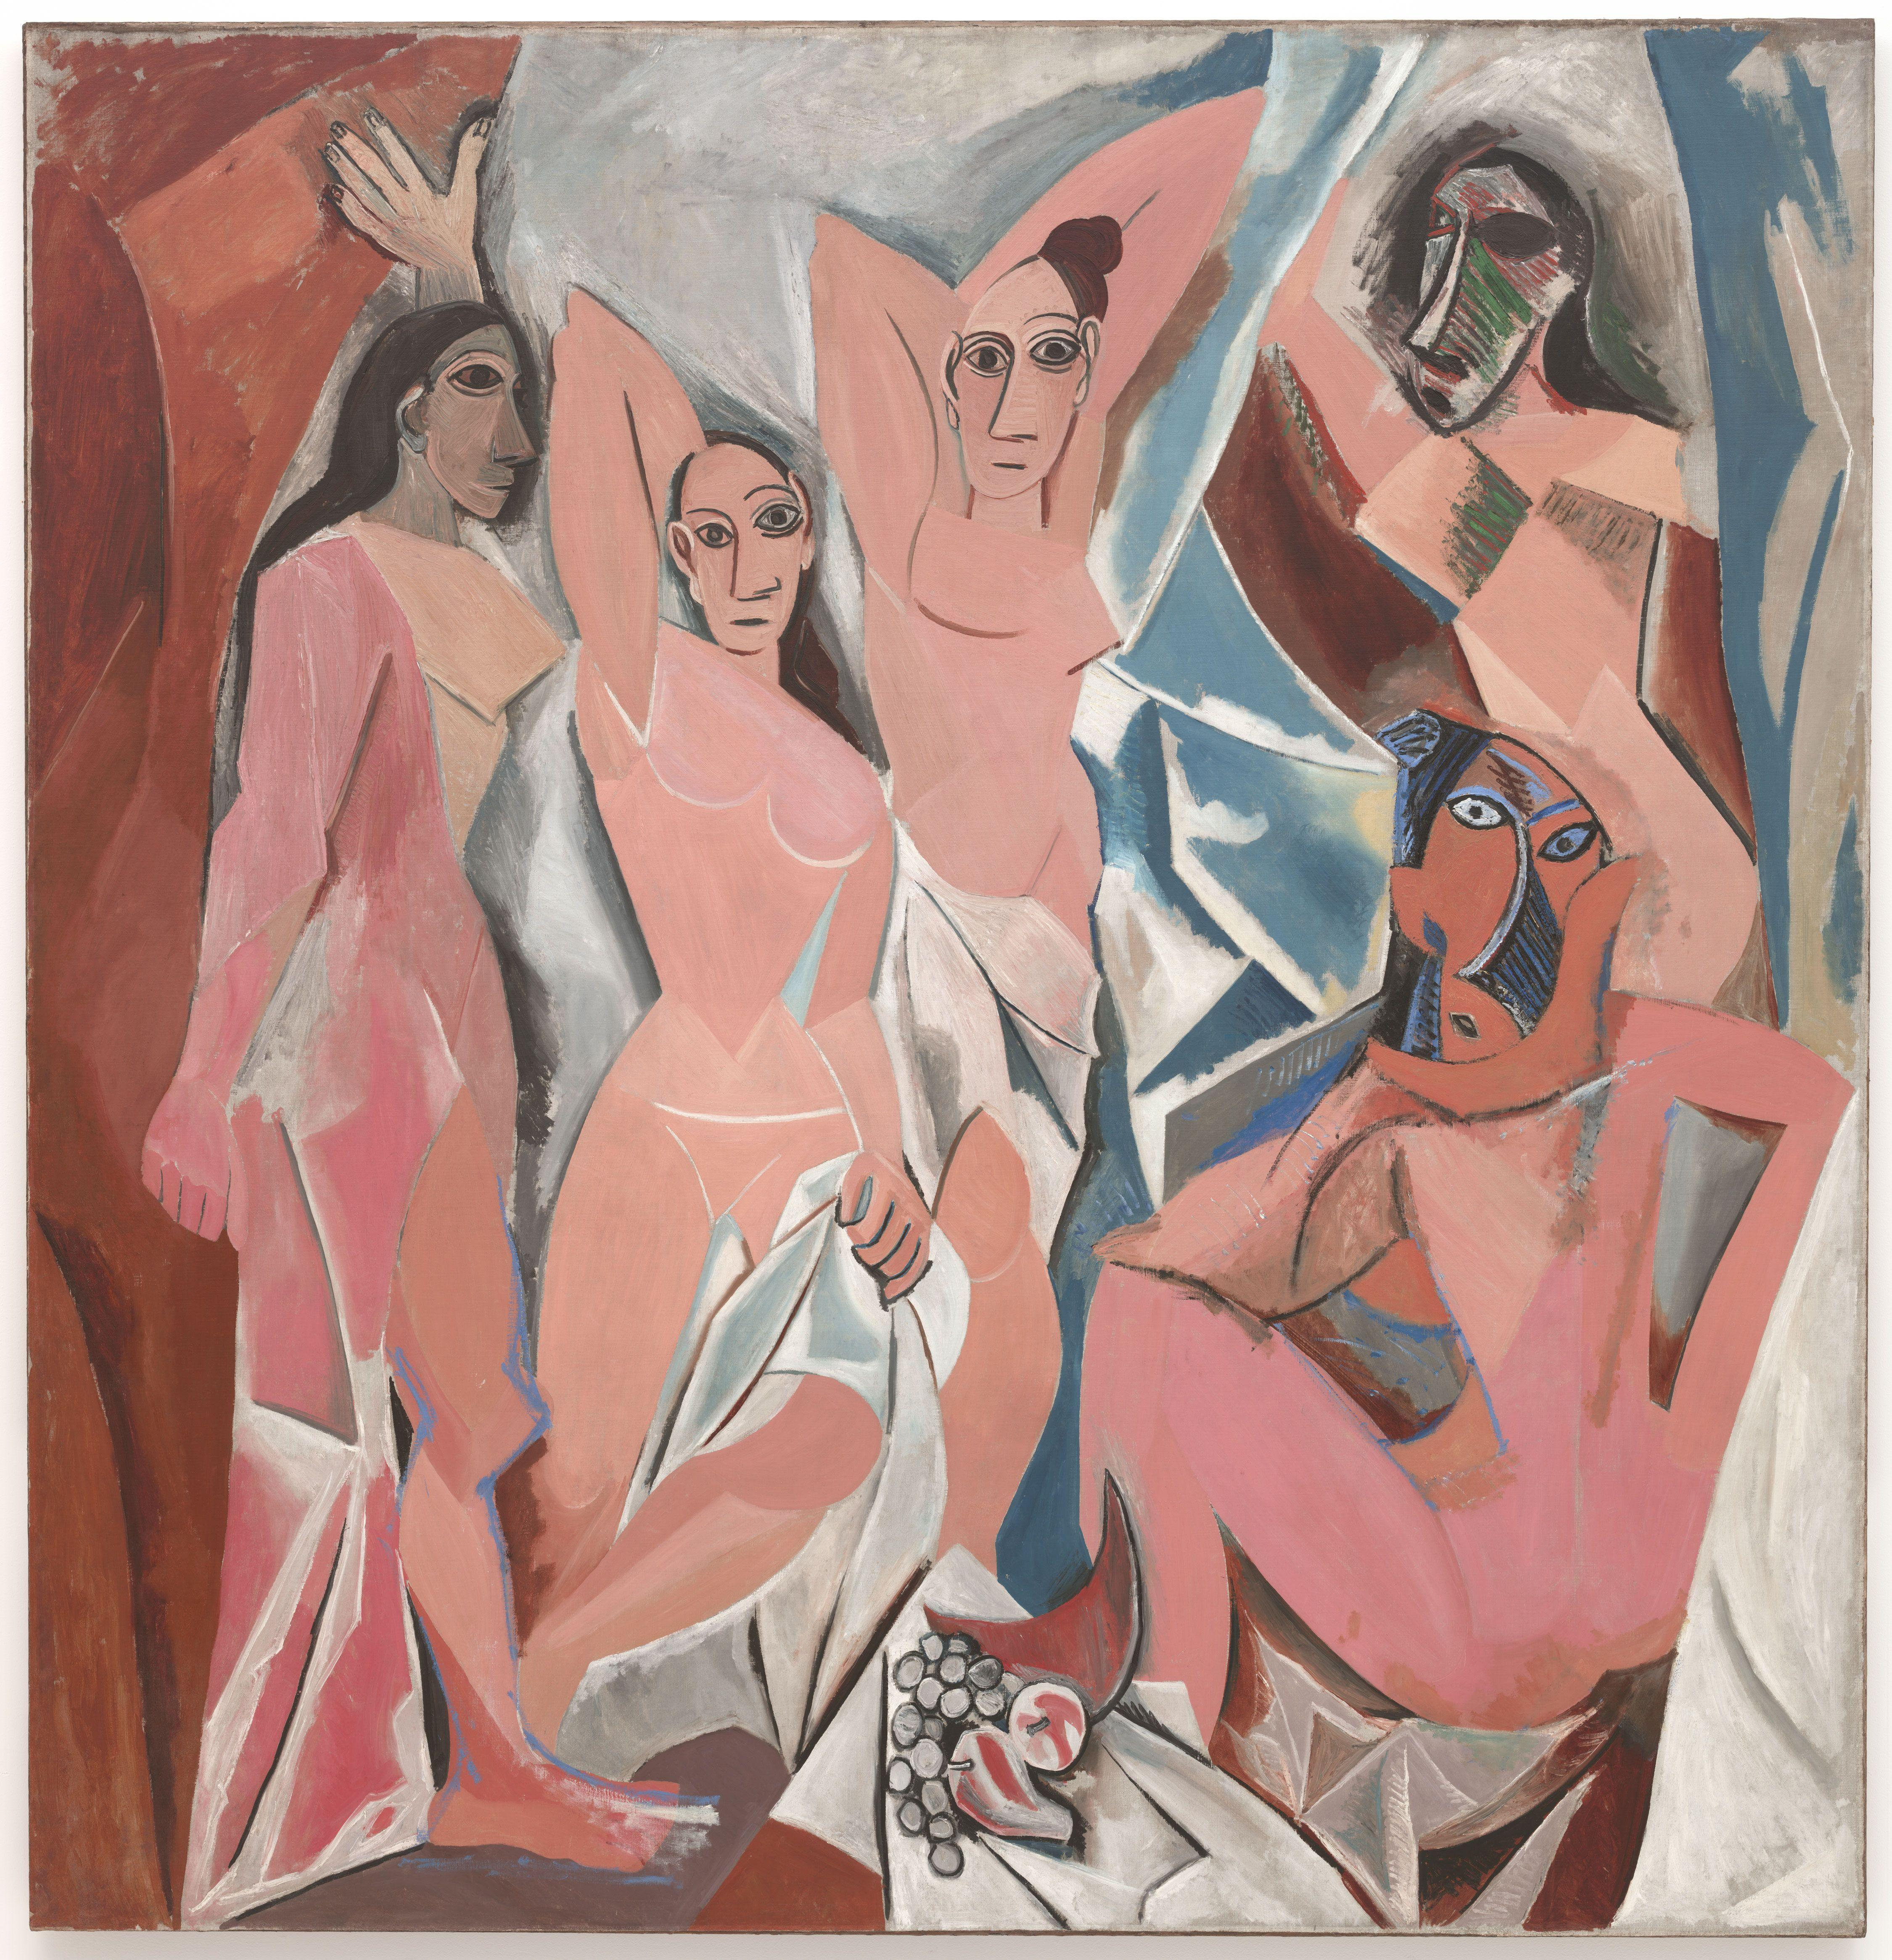 Pablo Picasso | Les demoiselles d'Avignon |1907 | © Museum of Modern Art, New York City